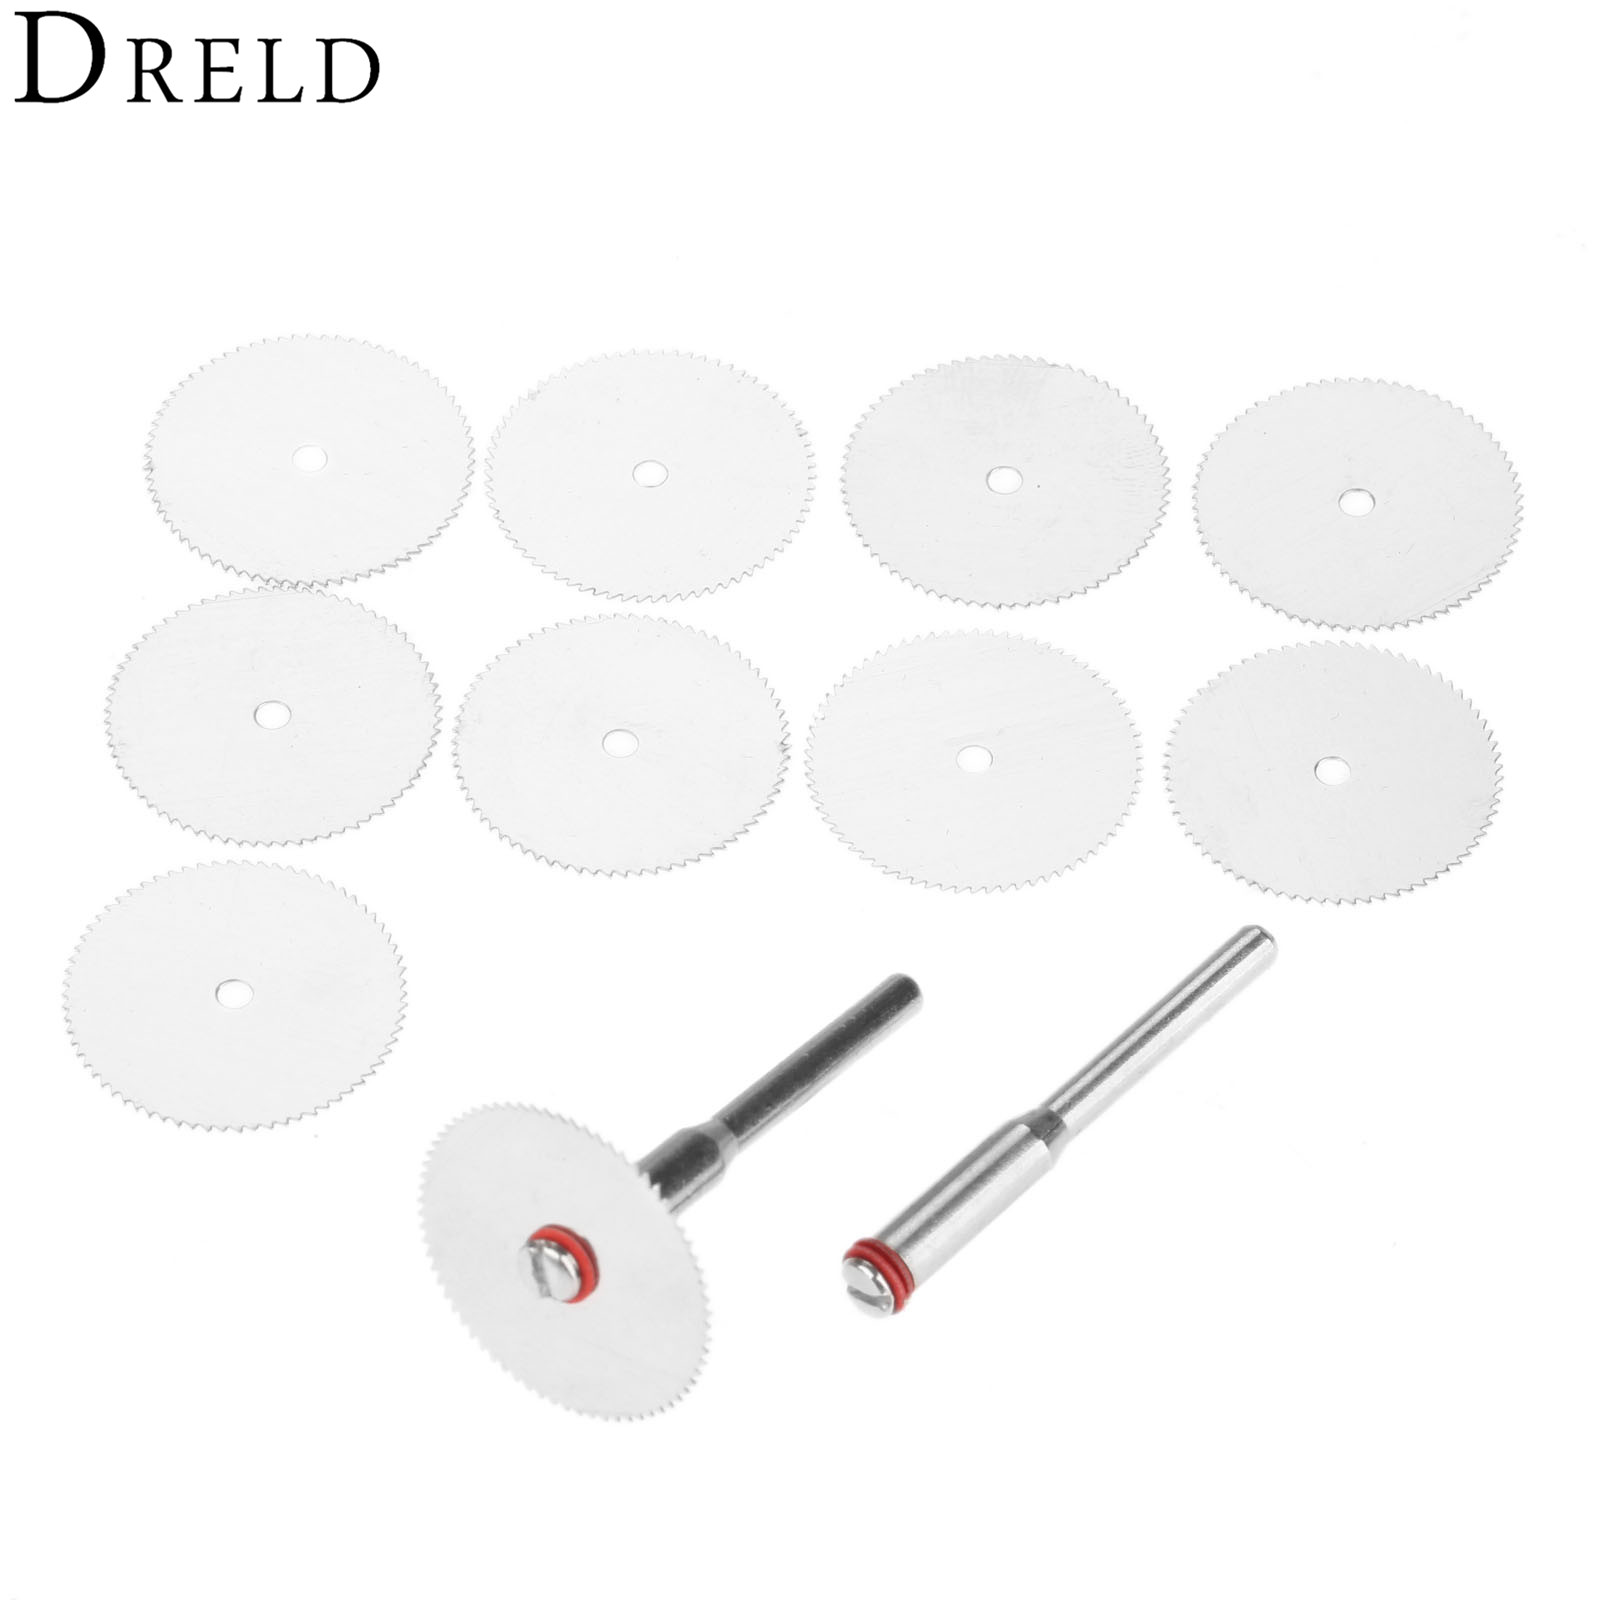 DRELD 10Pcs Dremel Accessories 22mm Cutting Disc Stainless Steel Cut Off Wheel With 2 Mandrels For Mini Drill Rotary Tool